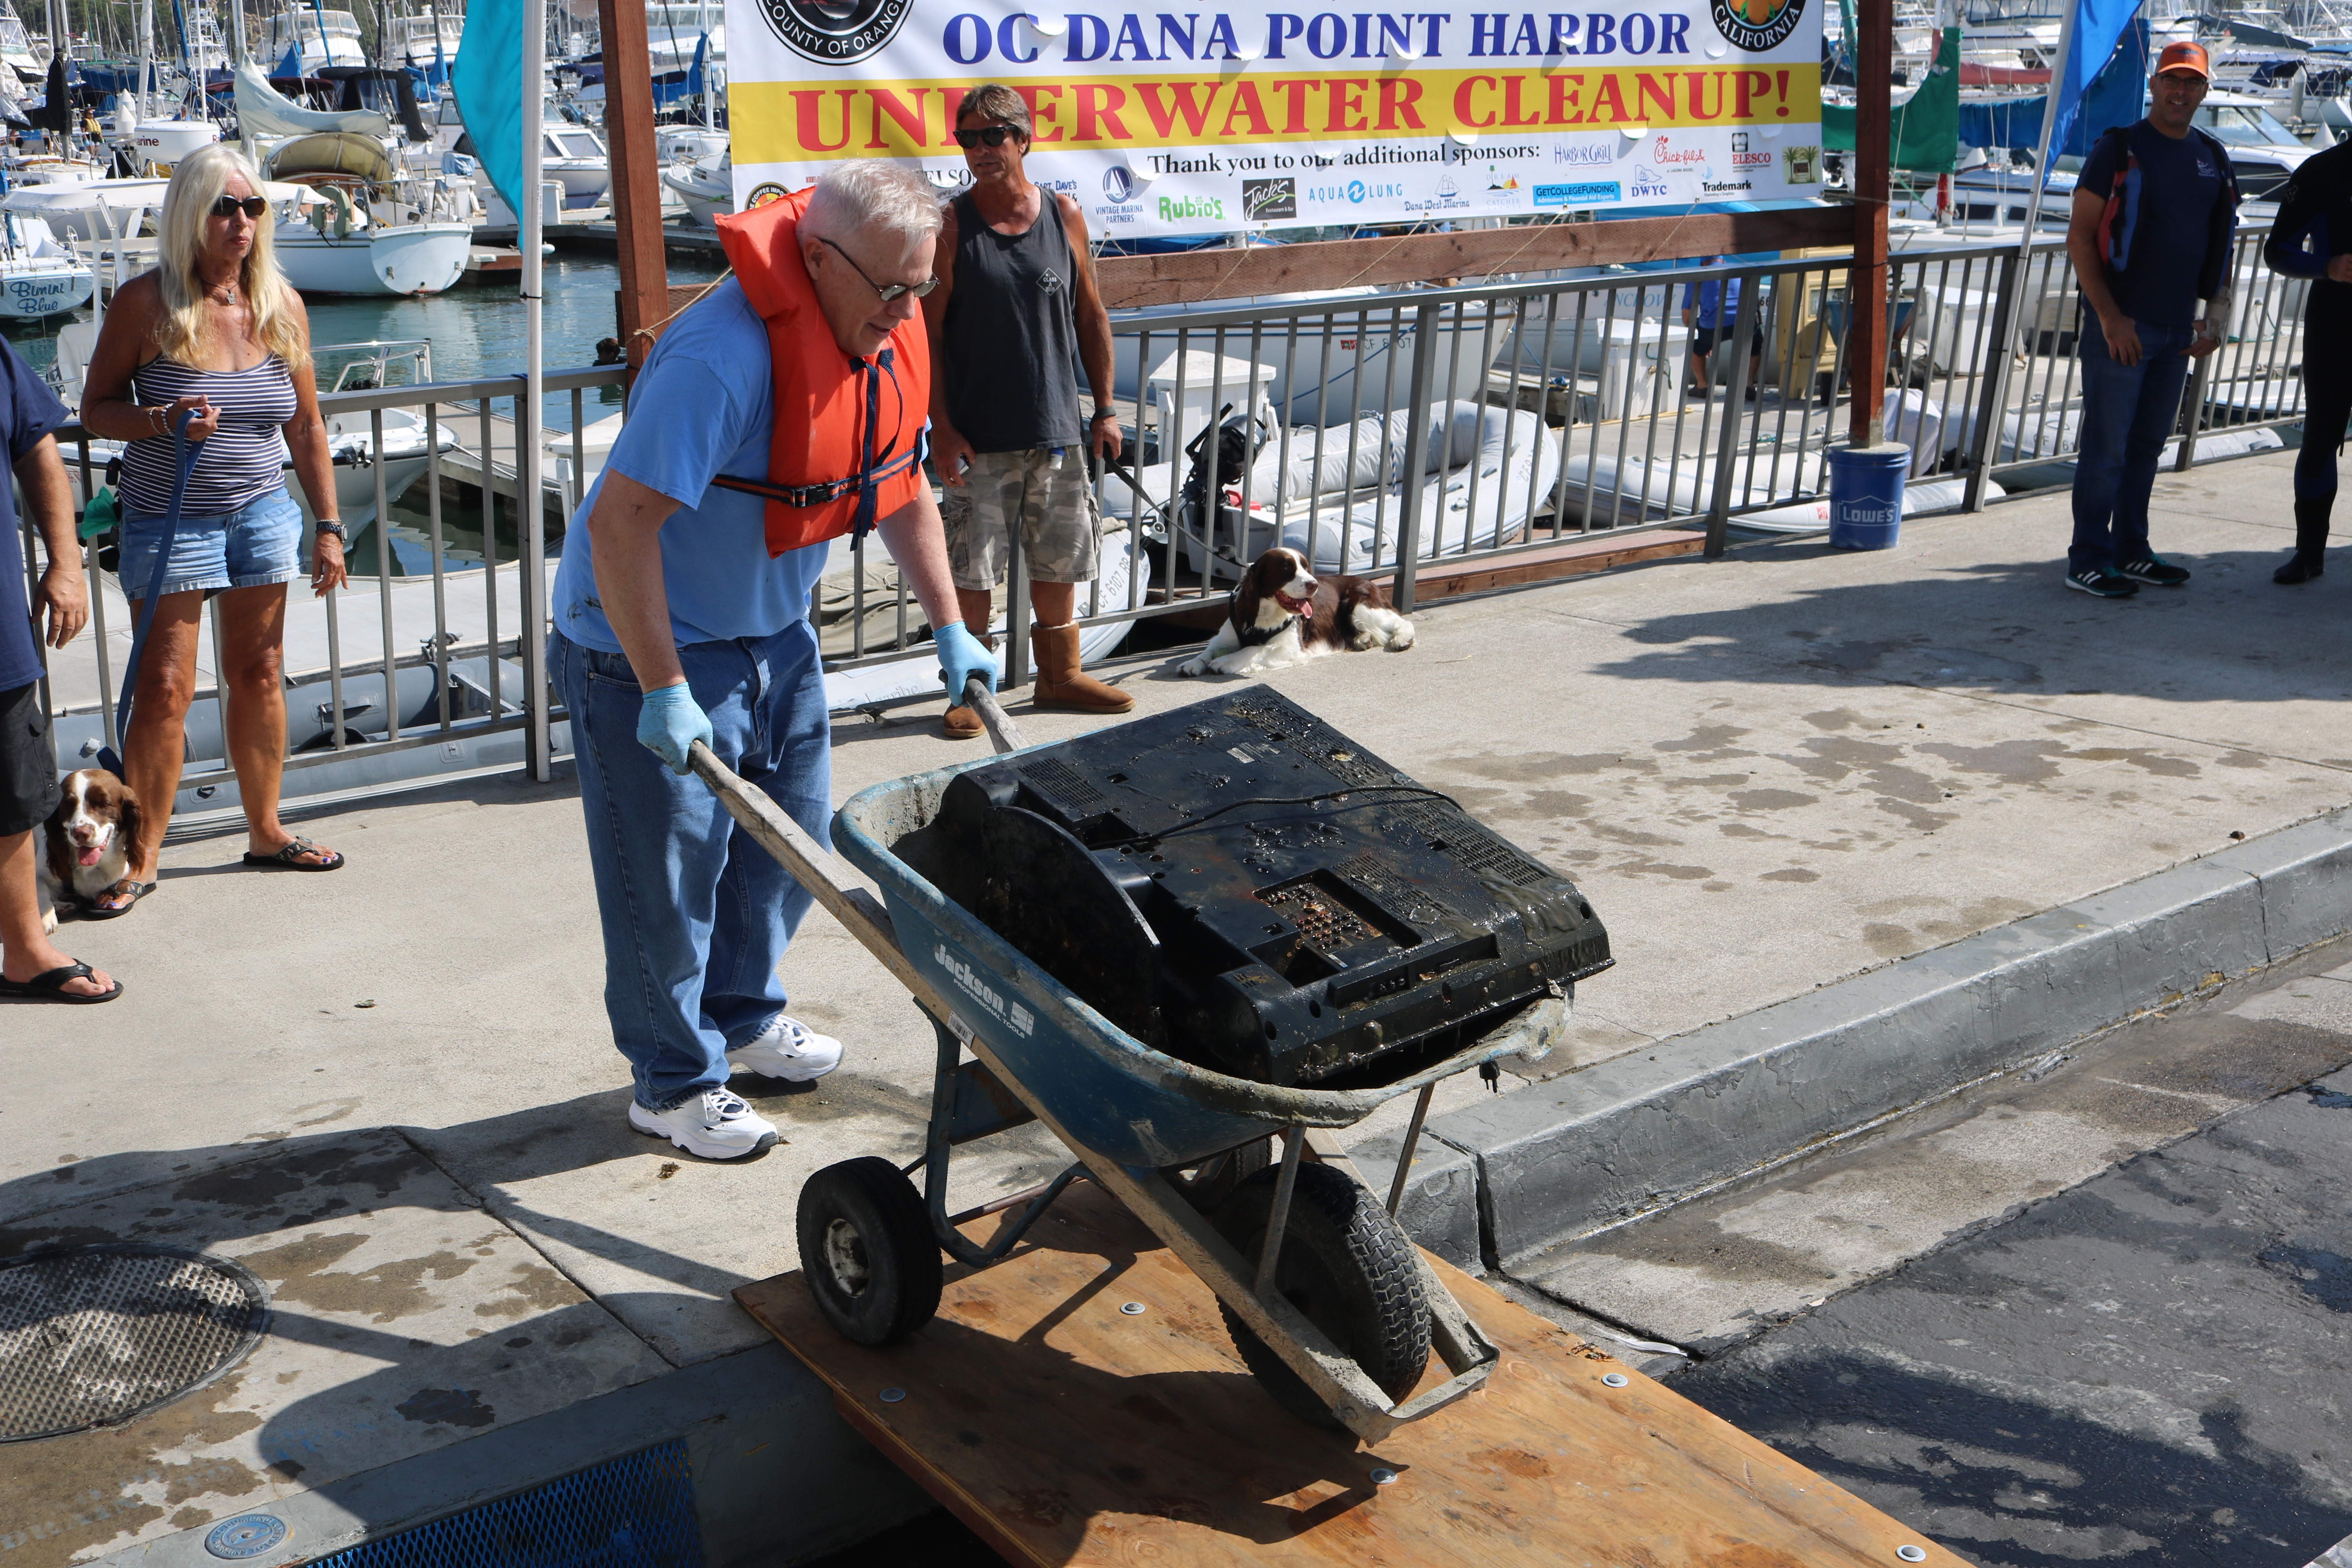 Dana Point Harbor Holds Underwater Cleanup | Dana Point Times